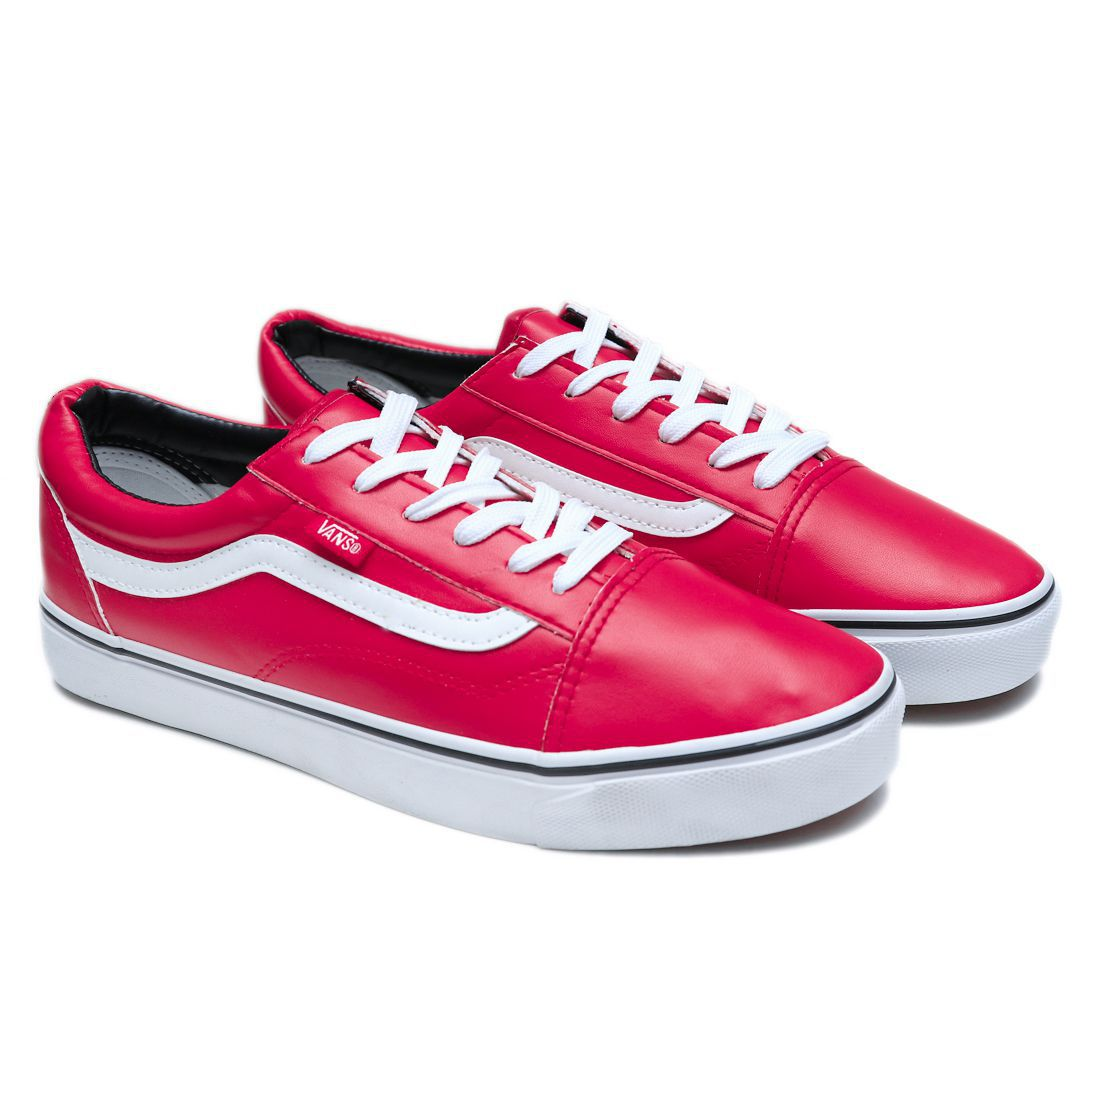 b76d346f400e05 VANS OLD SKOOL FASHION LEATHER Sneakers Red Casual Shoes - Buy VANS OLD  SKOOL FASHION LEATHER Sneakers Red Casual Shoes Online at Best Prices in  India on ...